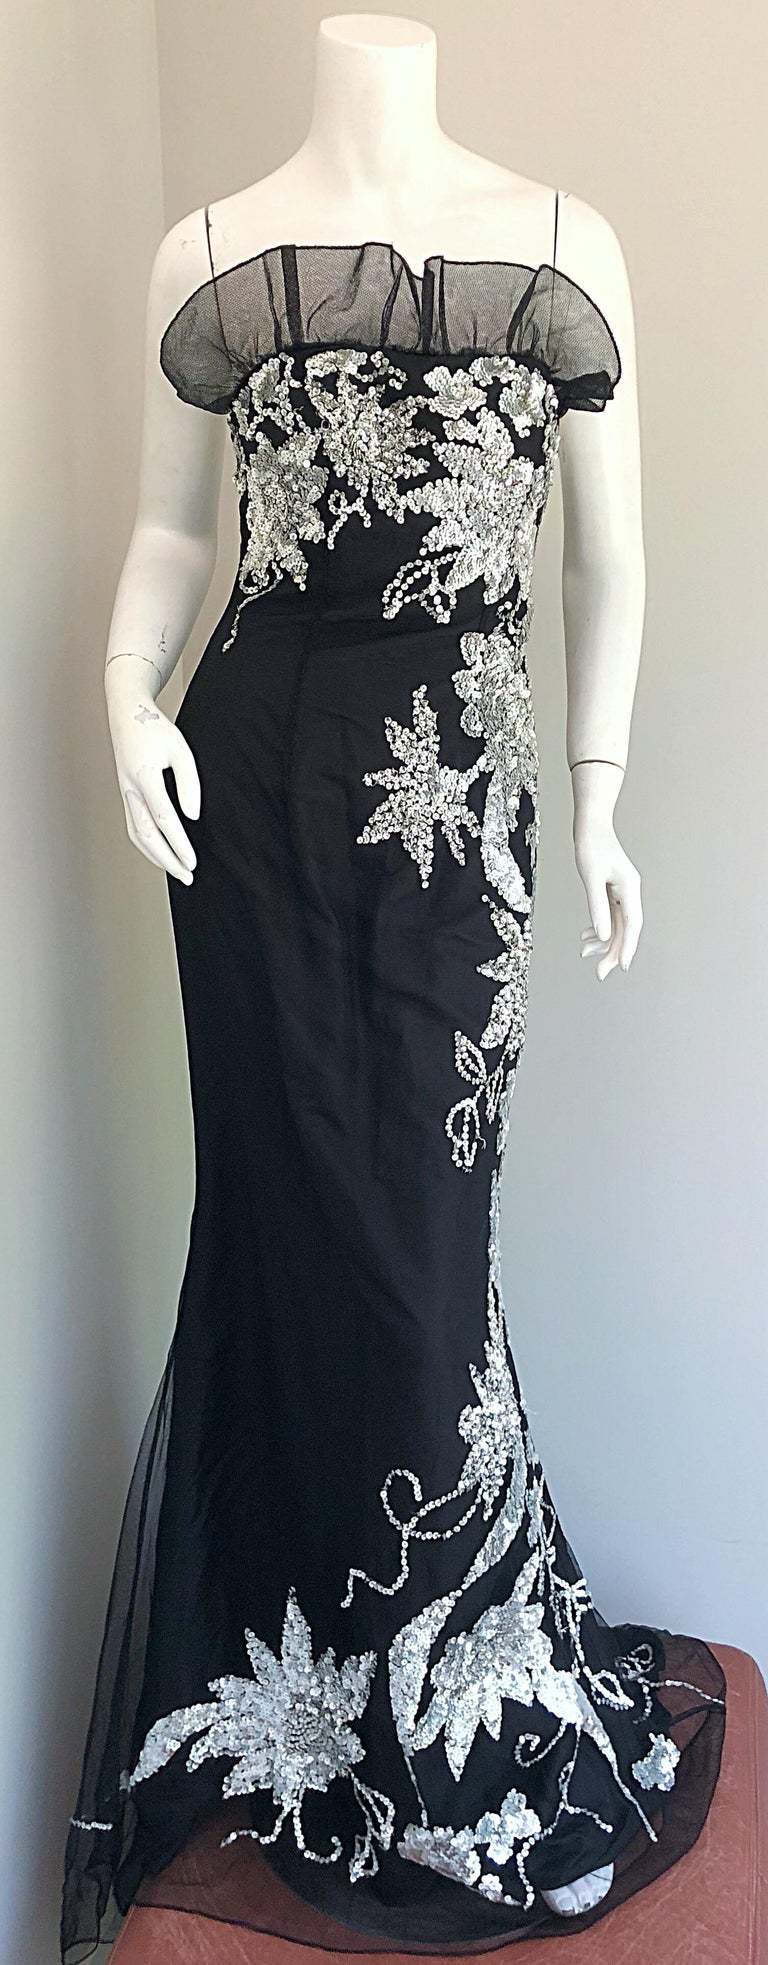 Gorgeous 1990s Black and Silver Sequined Dramatic Strapless Vintage 90s Gown  7